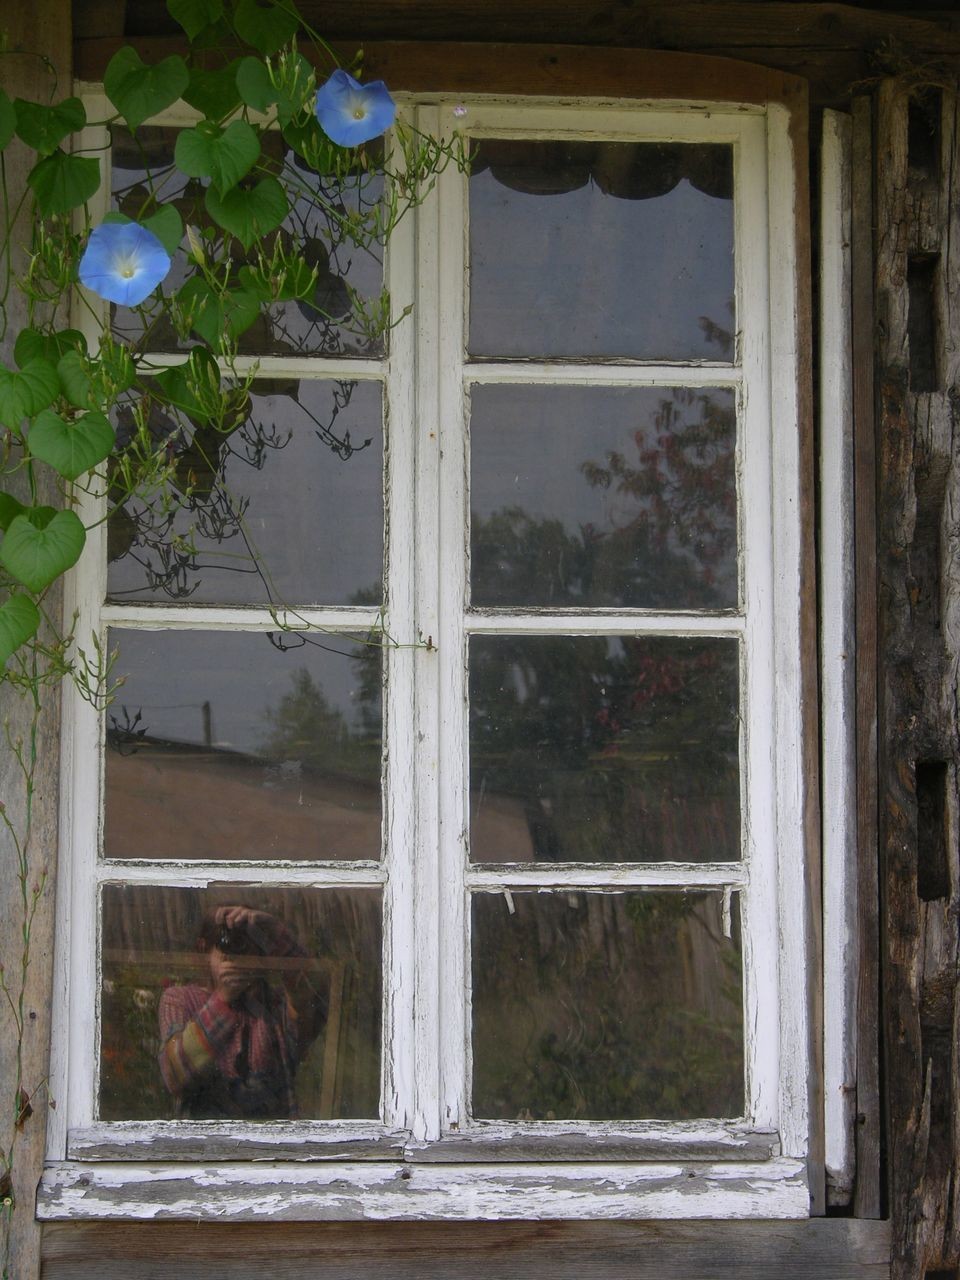 window, day, pets, built structure, architecture, no people, building exterior, tree, indoors, domestic animals, mammal, animal themes